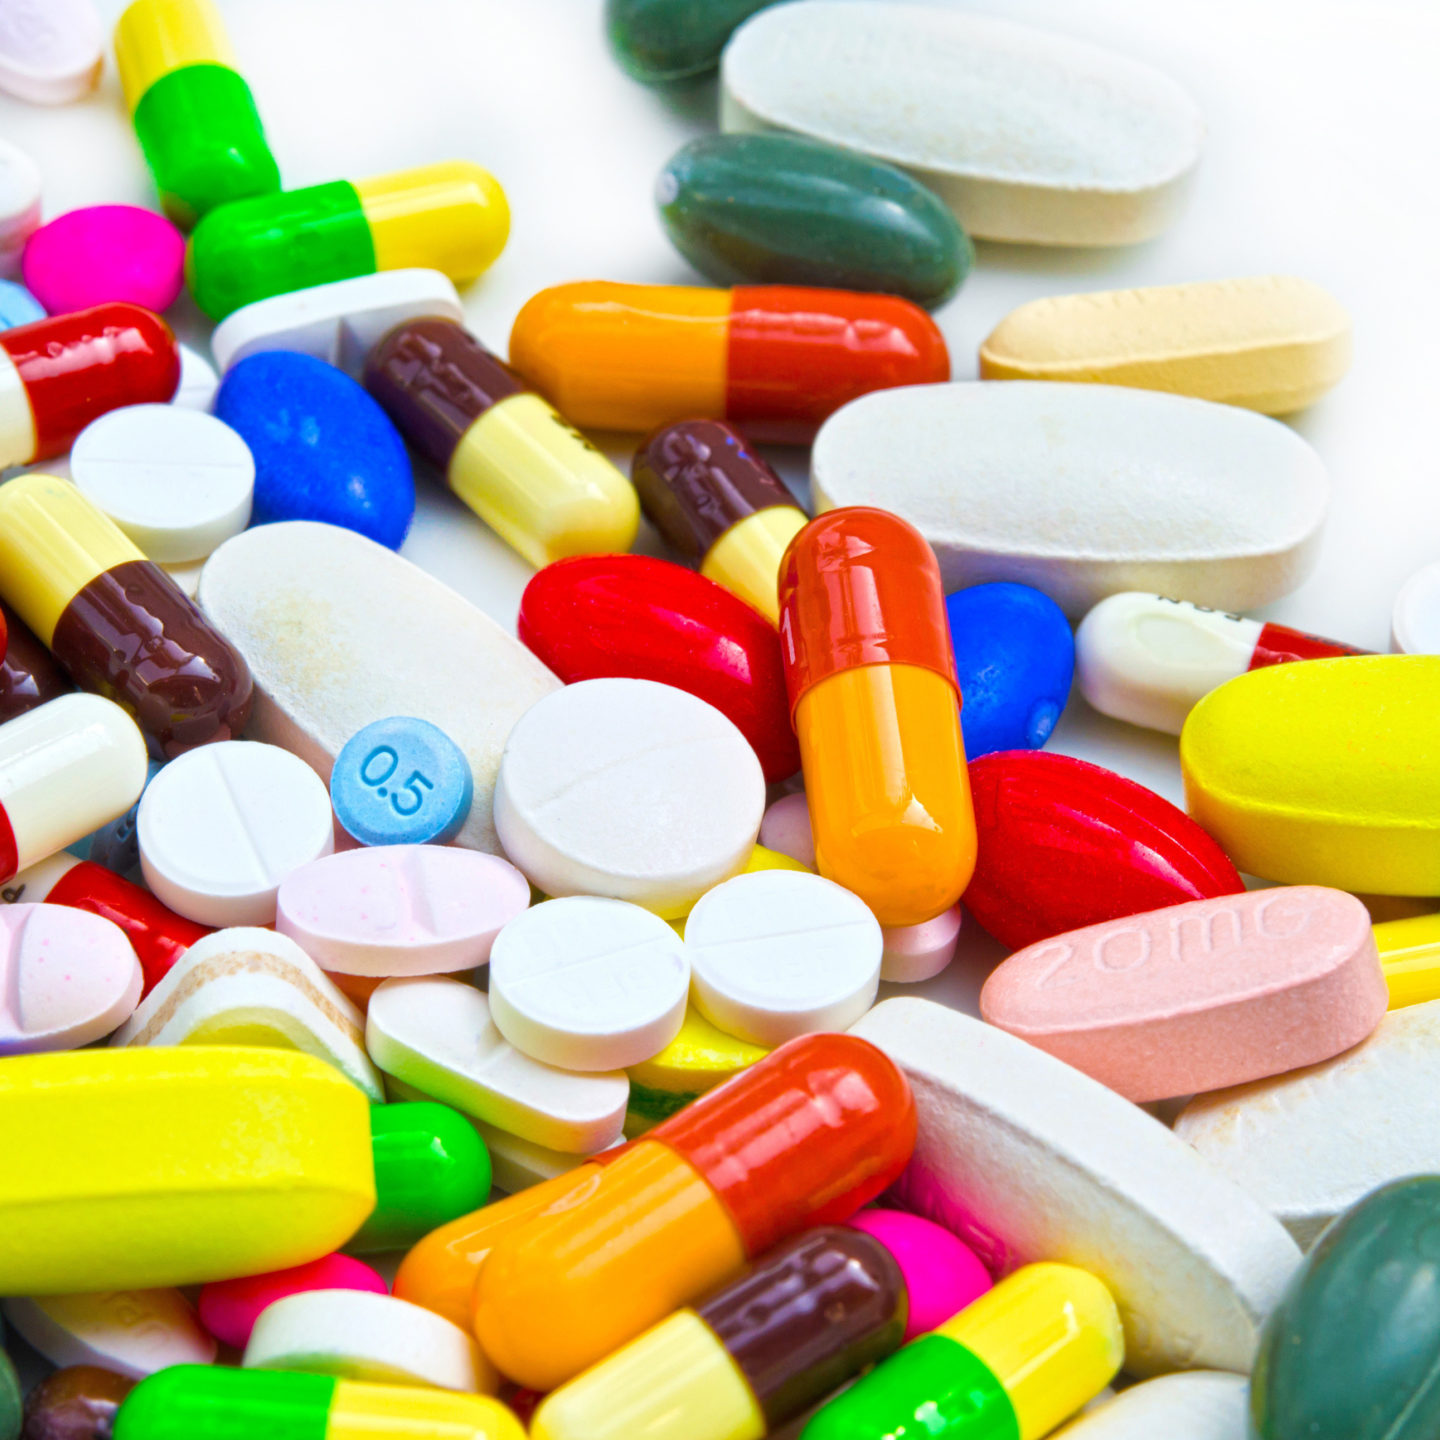 Colorful pile of pills